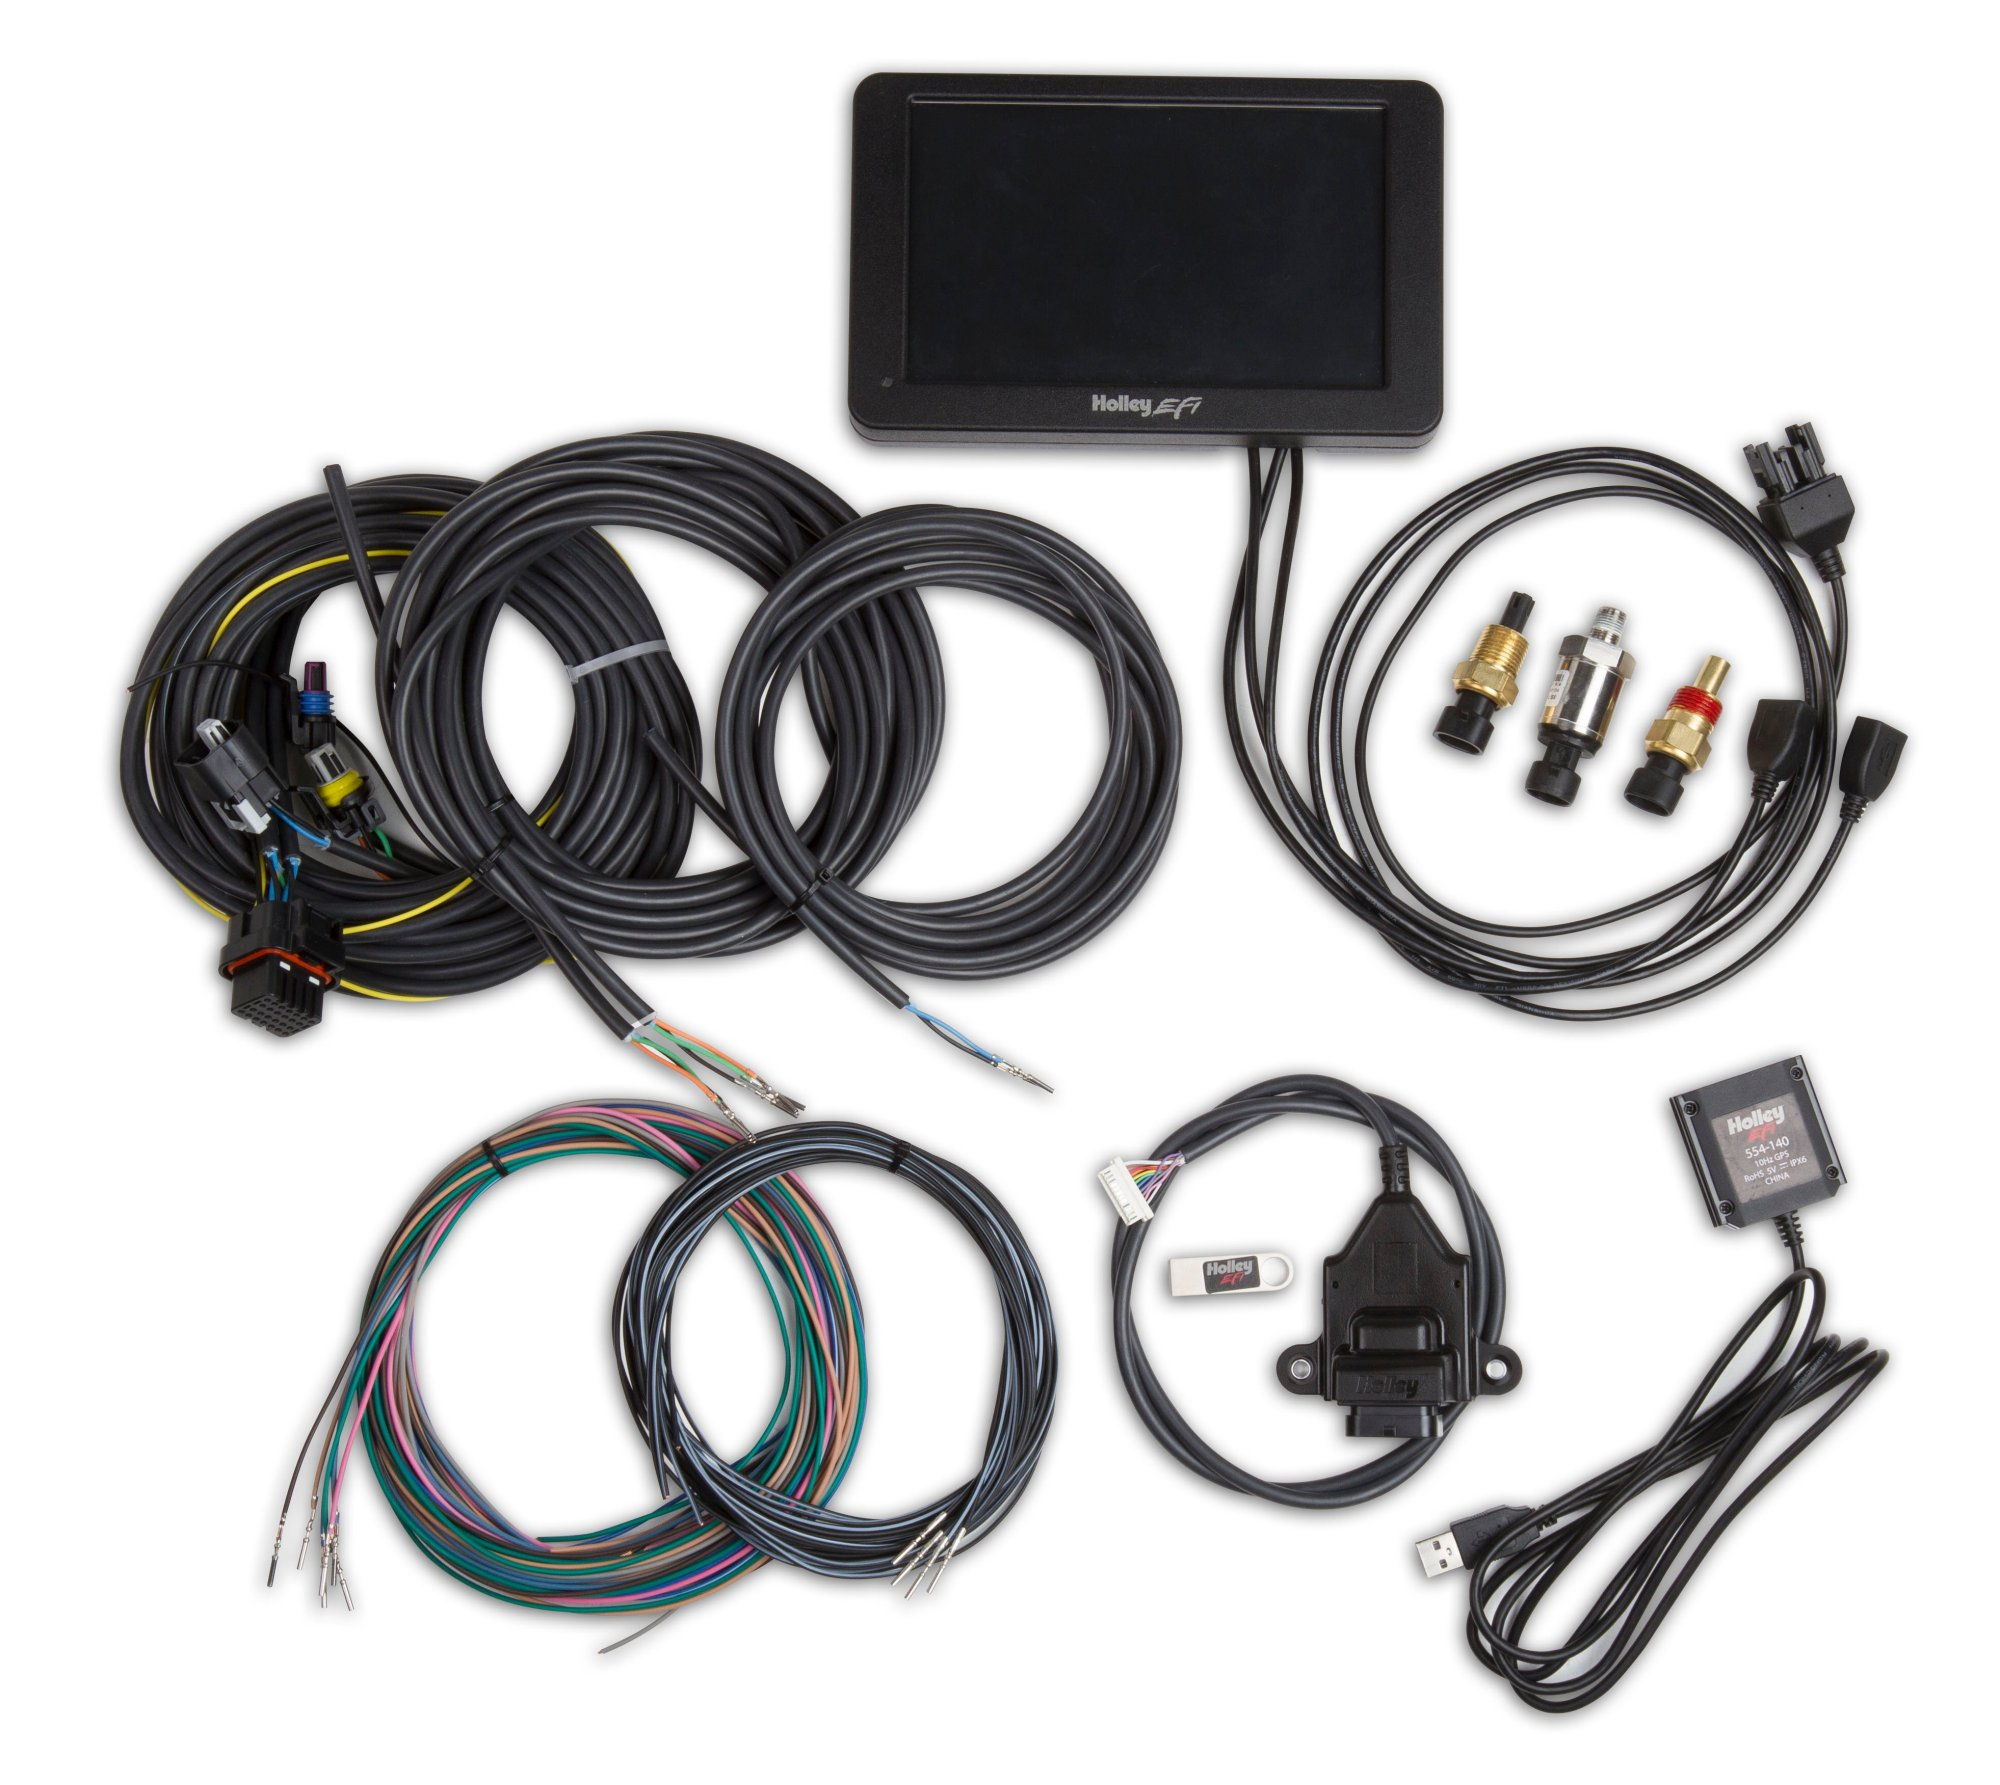 hight resolution of 553 109 holley stand alone digital dash kit image